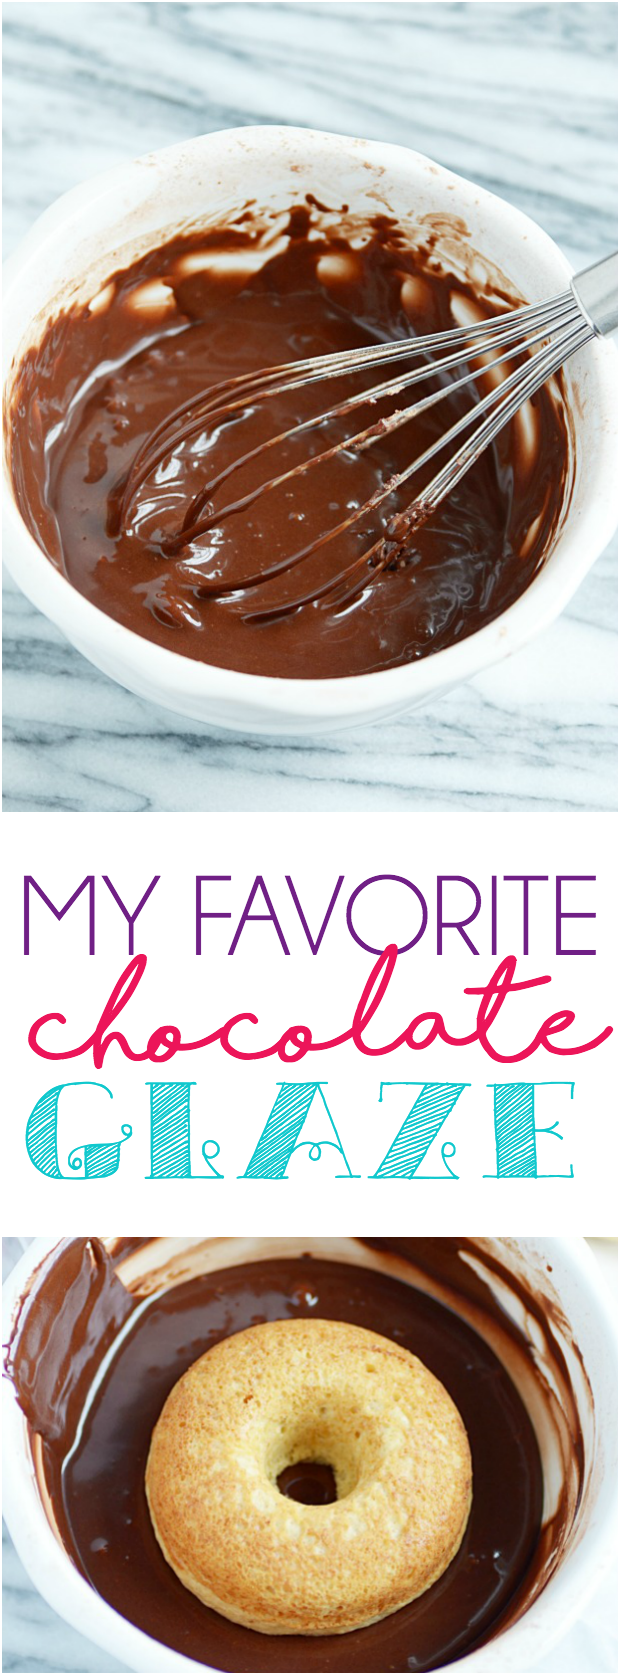 This EASY chocolate glaze is perfect for donuts, cookies, cakes, cupcakes, and more!